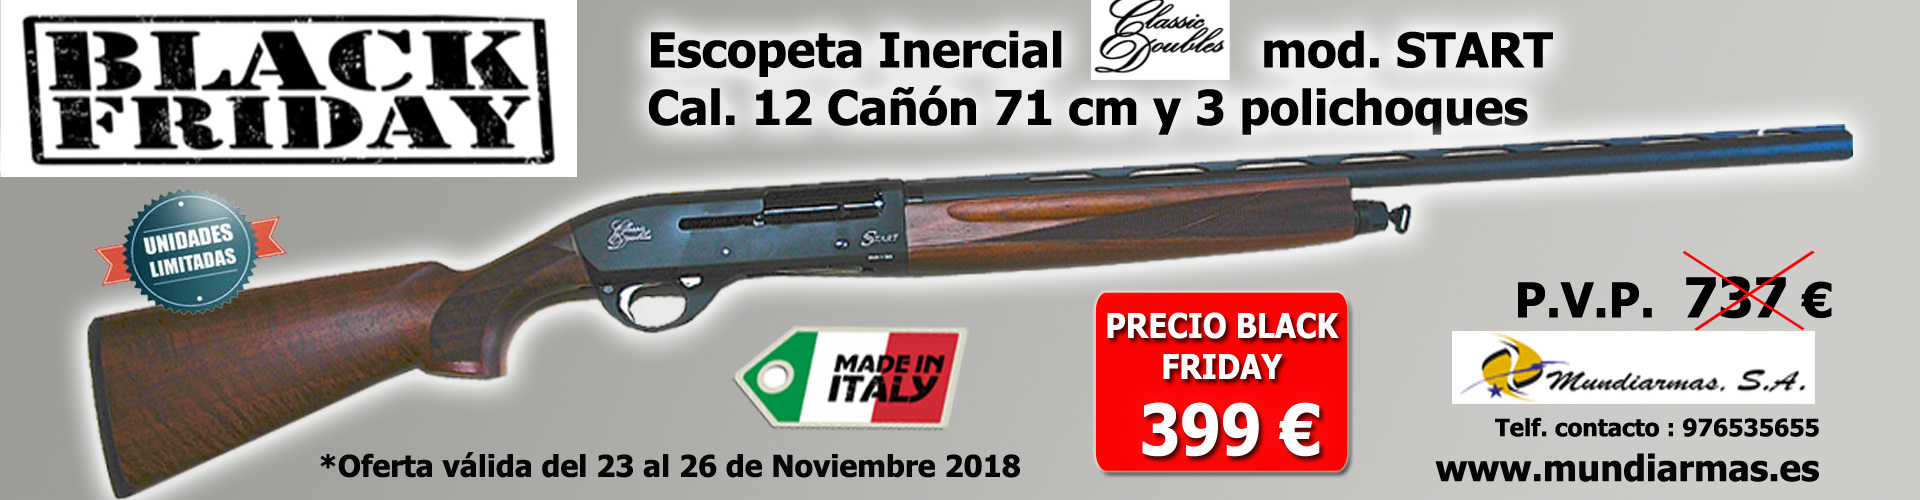 BLACK FRIDAY 2018 !!! ESCOPETA CLASSIC DOUBLES MOD. START 399€